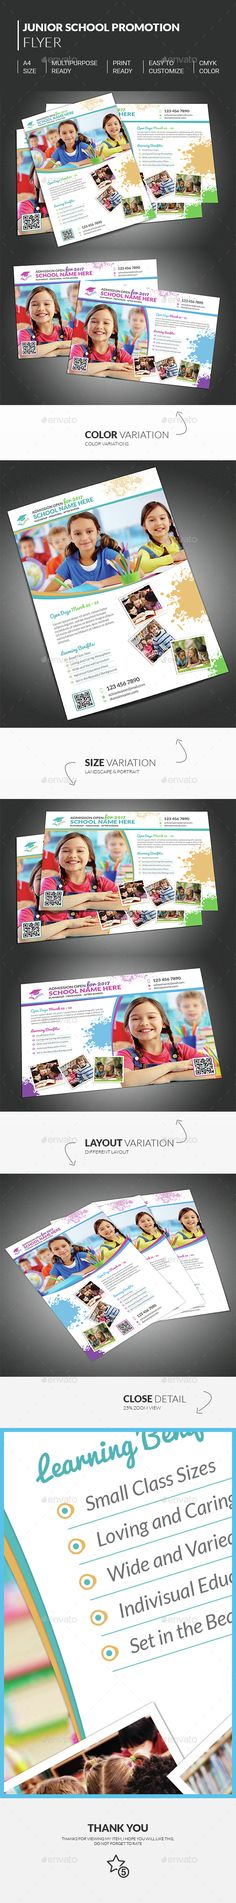 Special Junior School Promotion Flyer Template, Suitable for junior or preschool theme perfect for informing school admission, new academic year or promoting the opening of new school. Free Banner Templates, Print Templates, Flyer Printing, Banner Printing, Banner Design, Flyer Design, Kindergarten Logo, Birthday Flyer, Education Banner